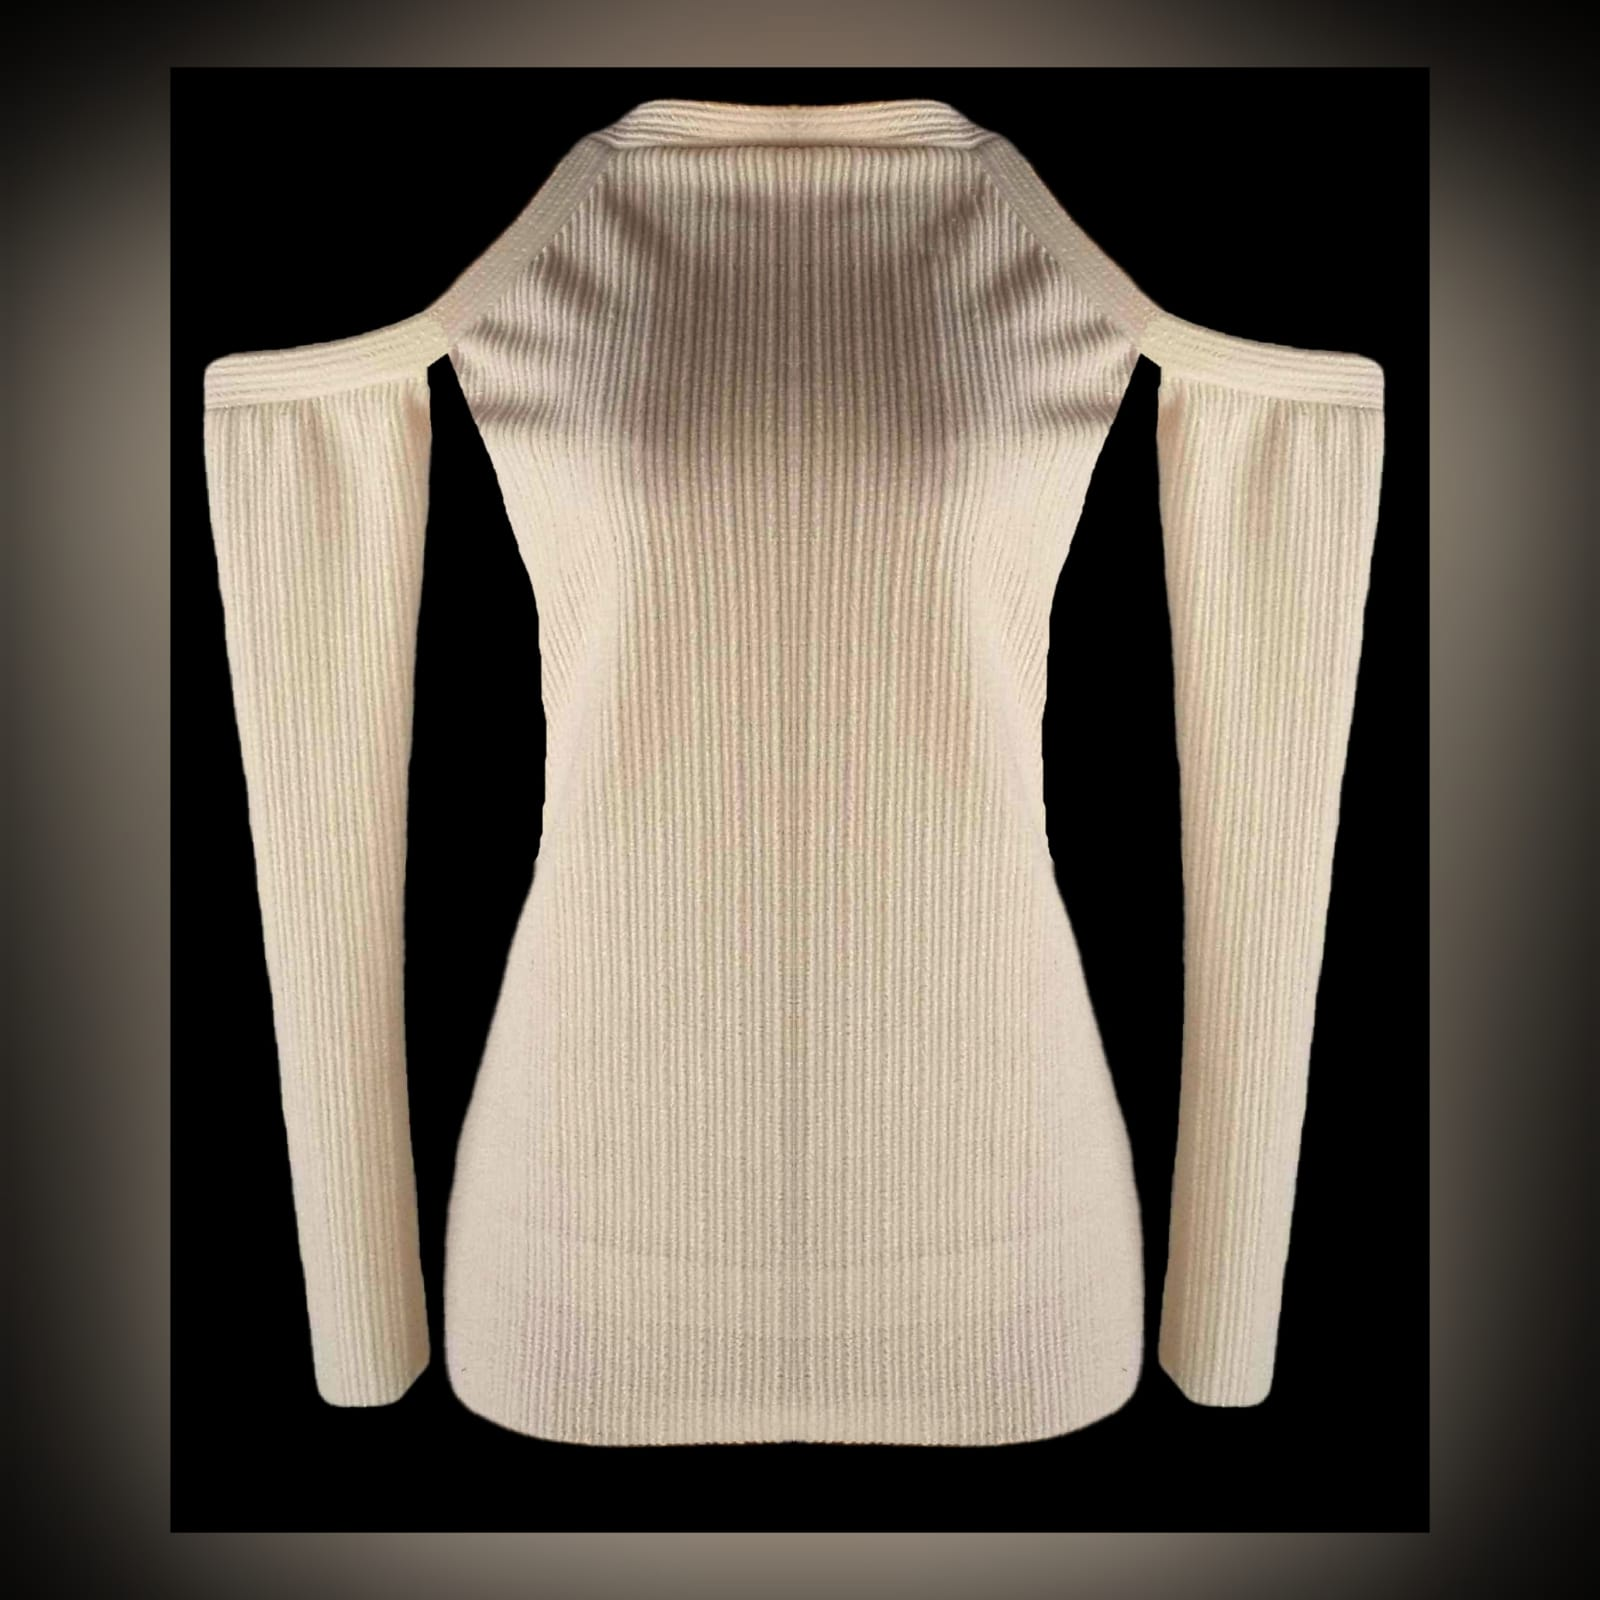 Beige winter knitted smart casual top 2 beige winter knitted smart casual top, with off shoulder long sleeves